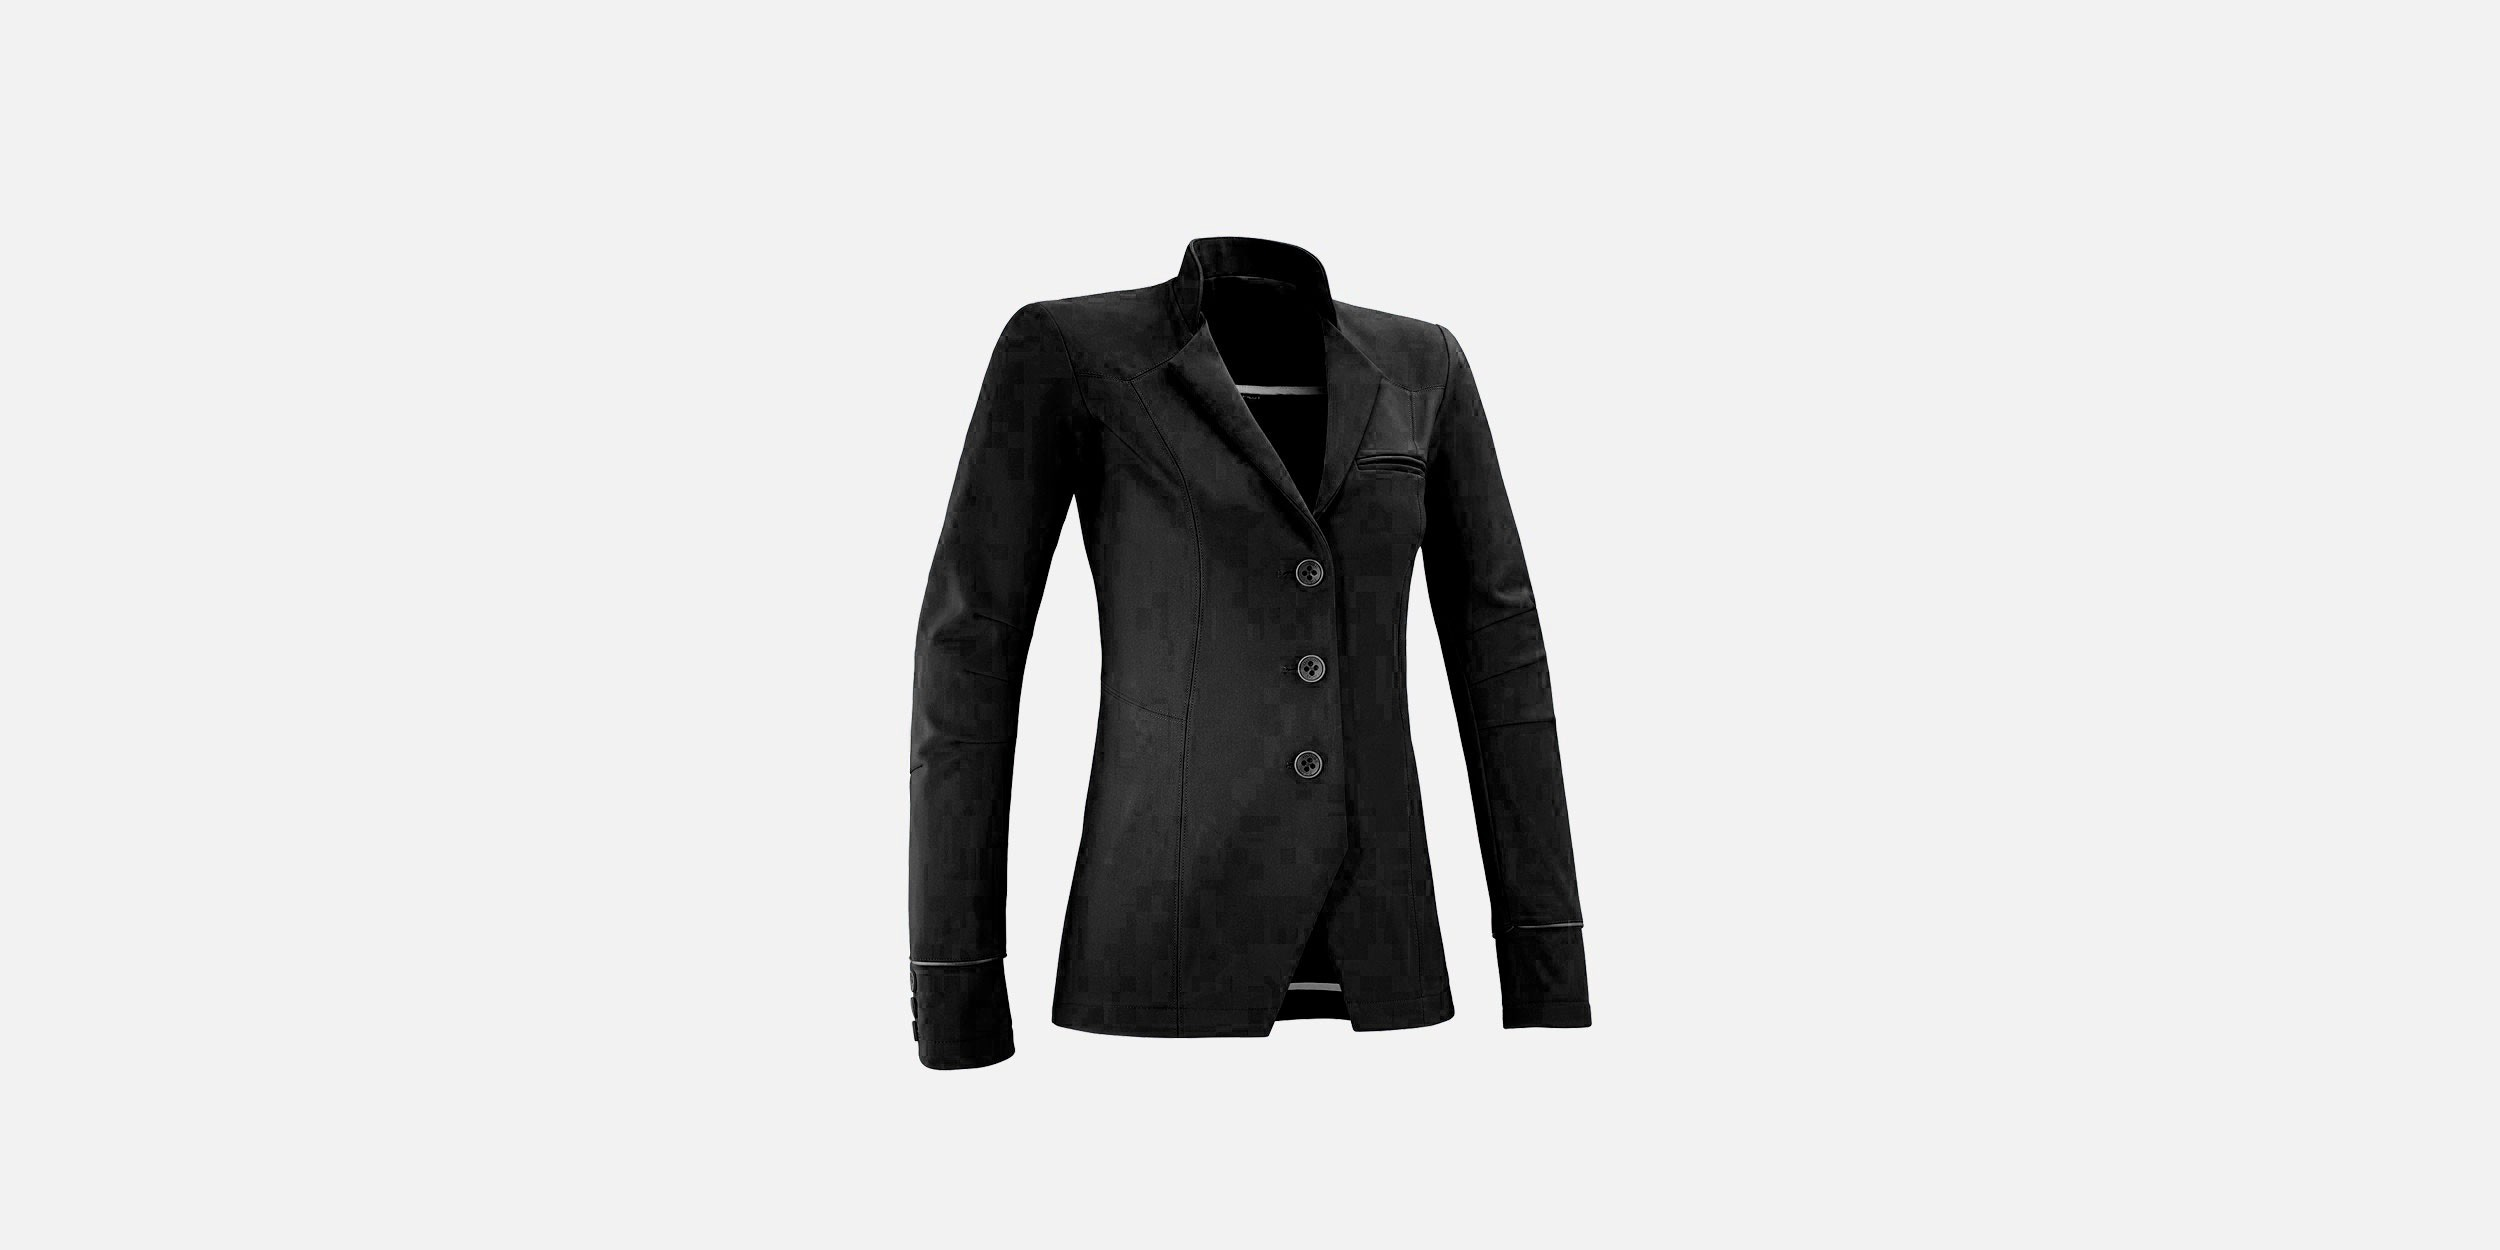 Tailor Made 2.0 Customisable jacket